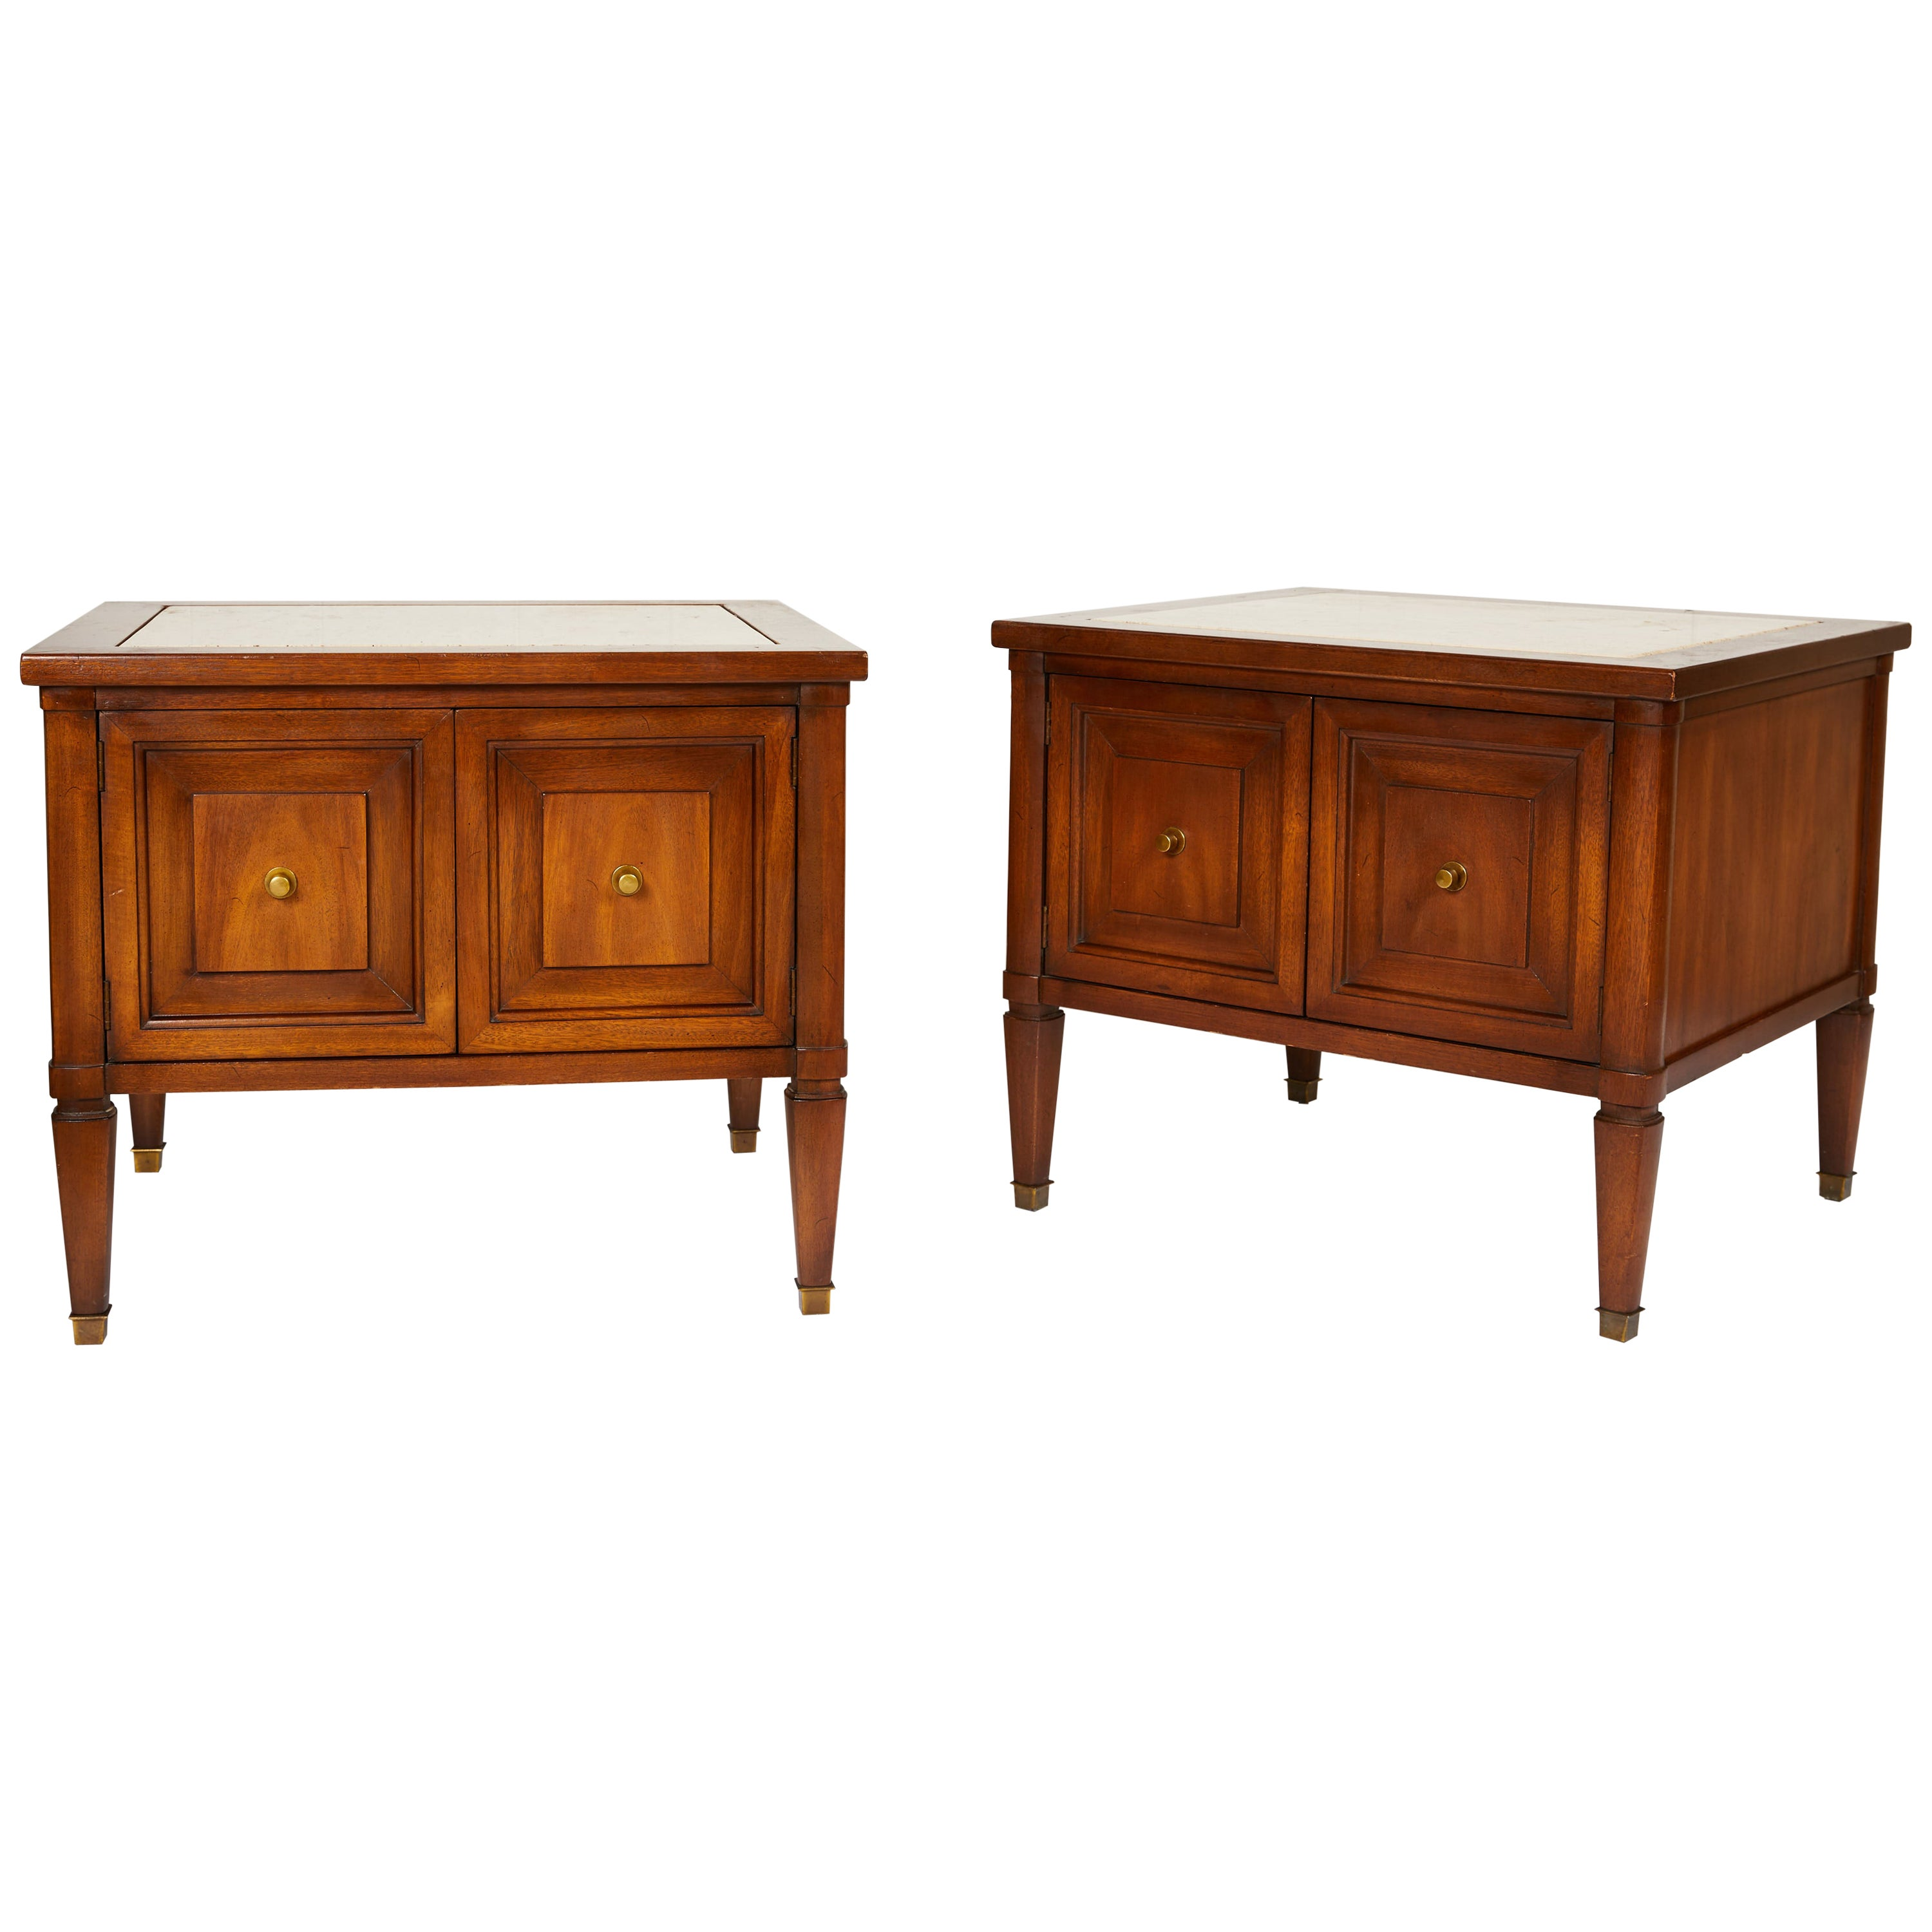 Midcentury Italian Walnut End Tables Inset with Travertine Tops